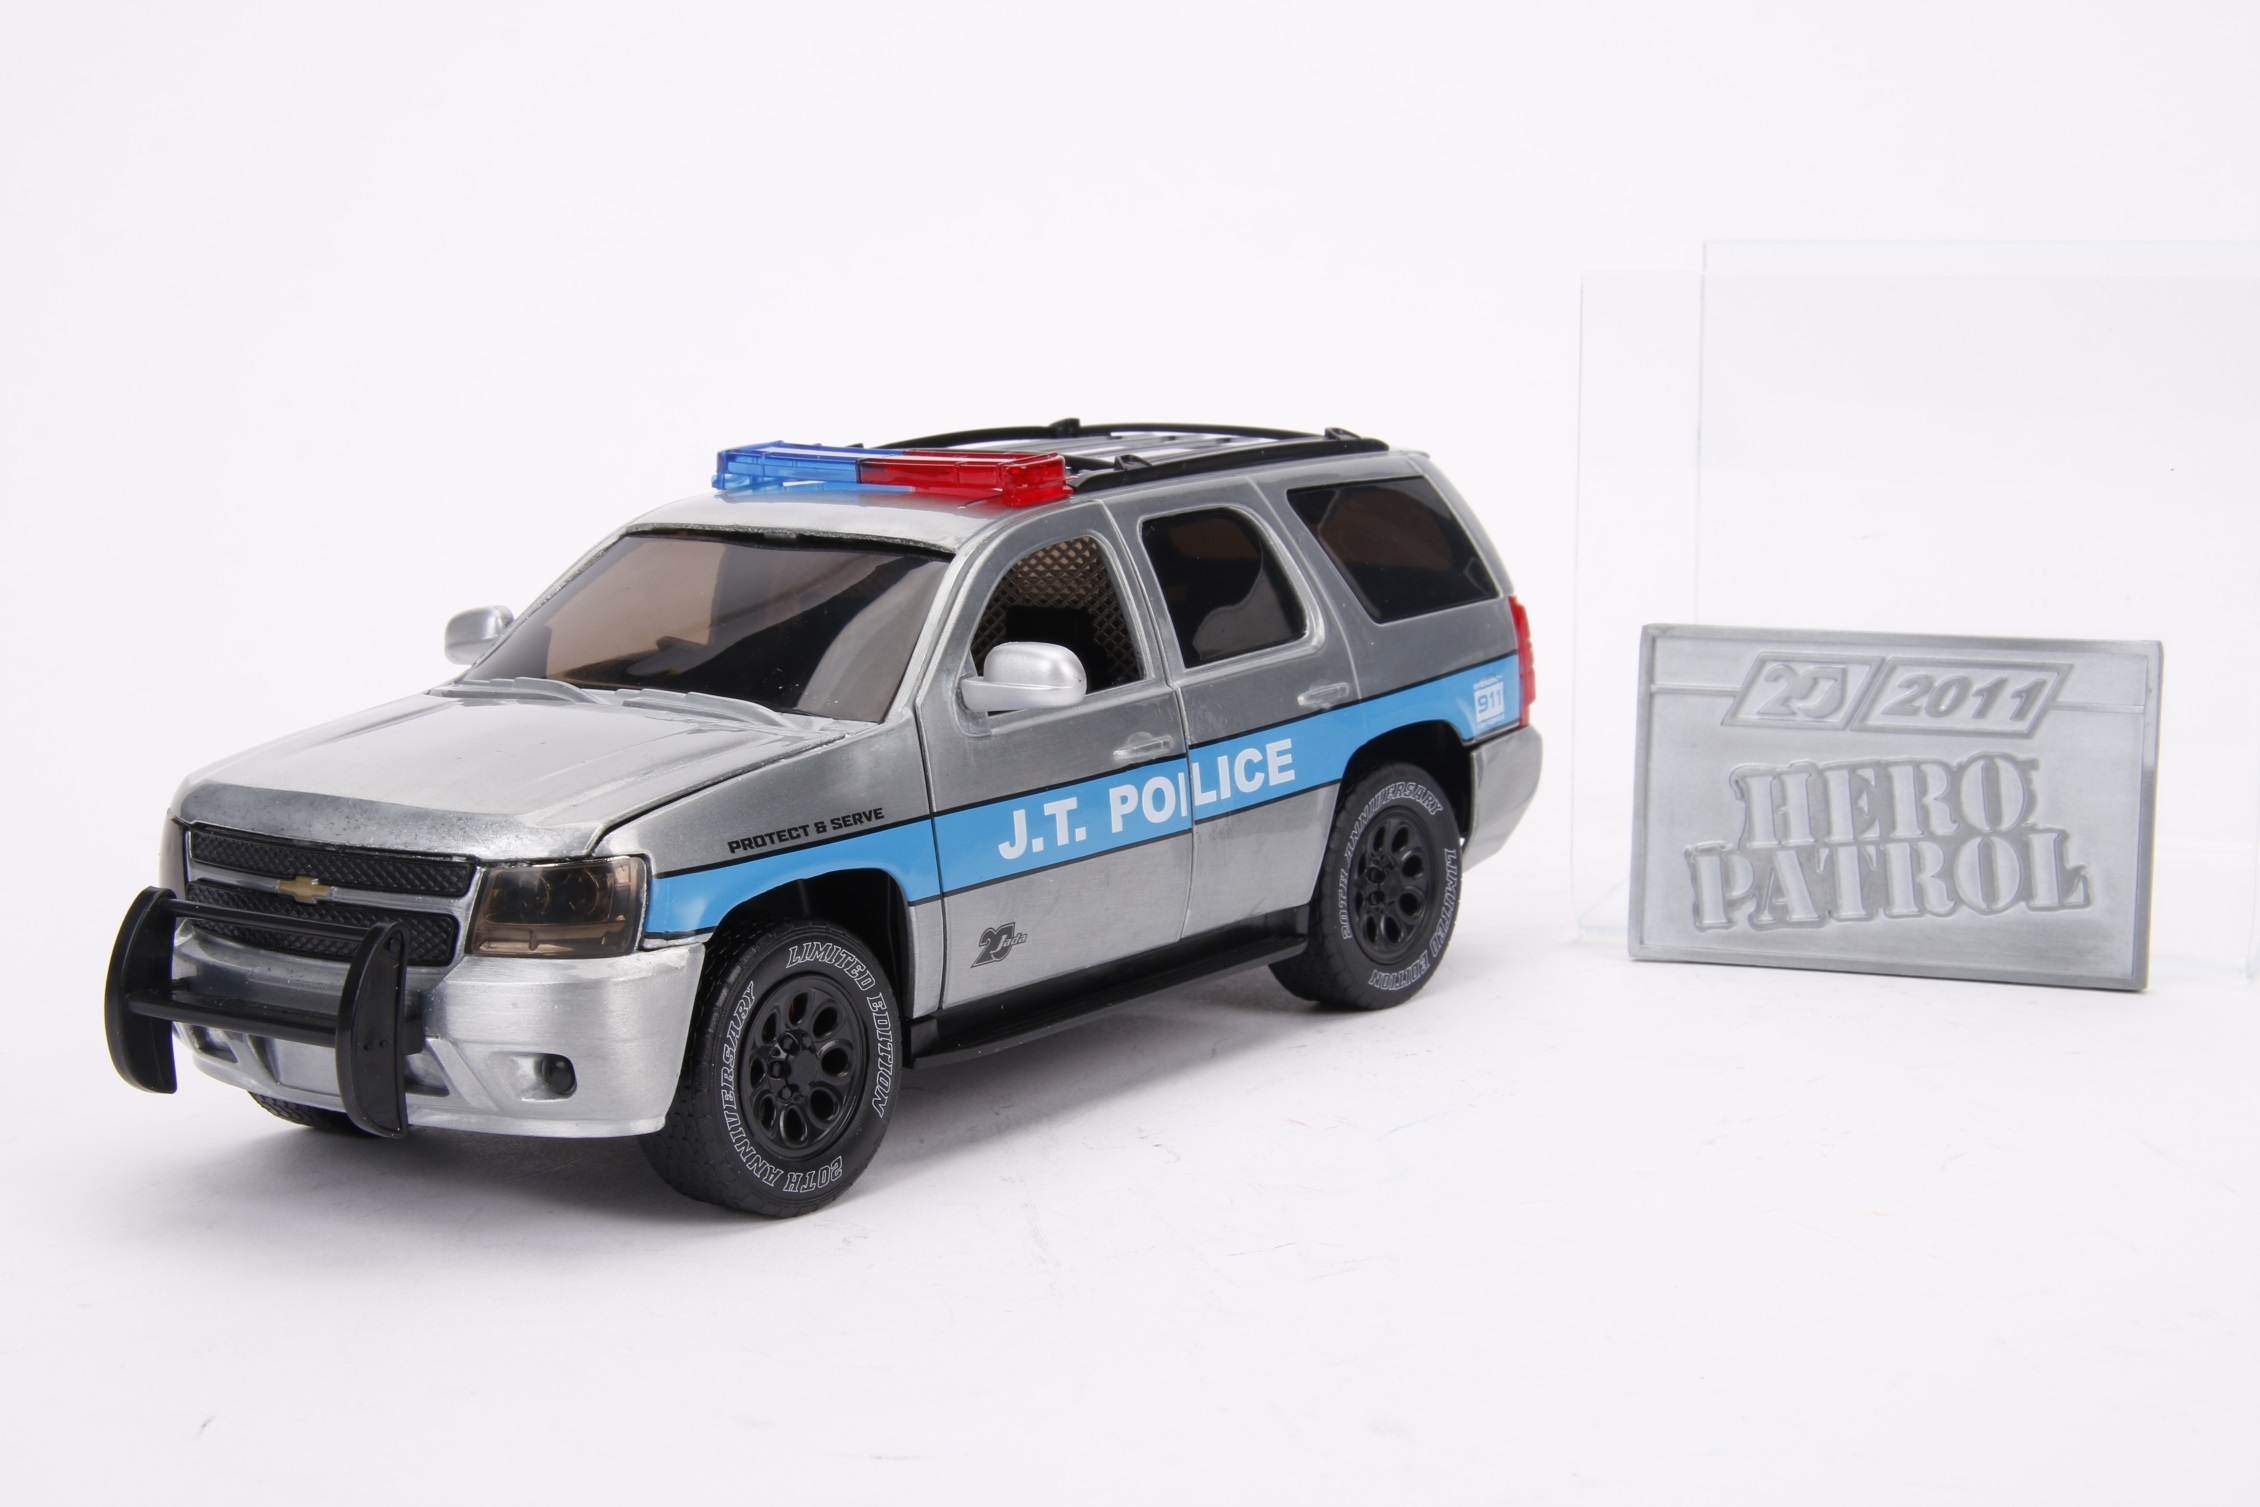 2010 Chevy Tahoe - Wave 1